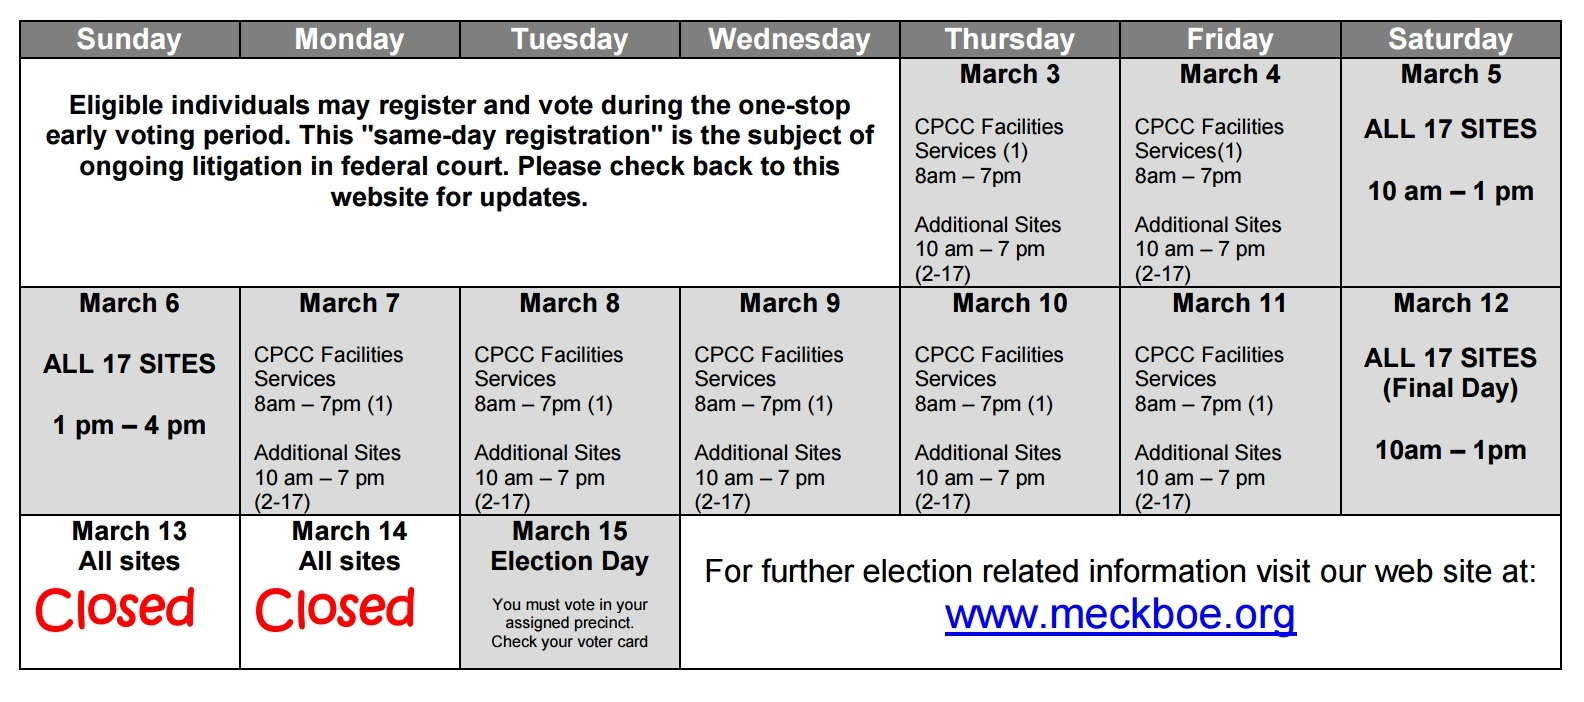 2016 primary elections/voting schedule in charlotte, nc